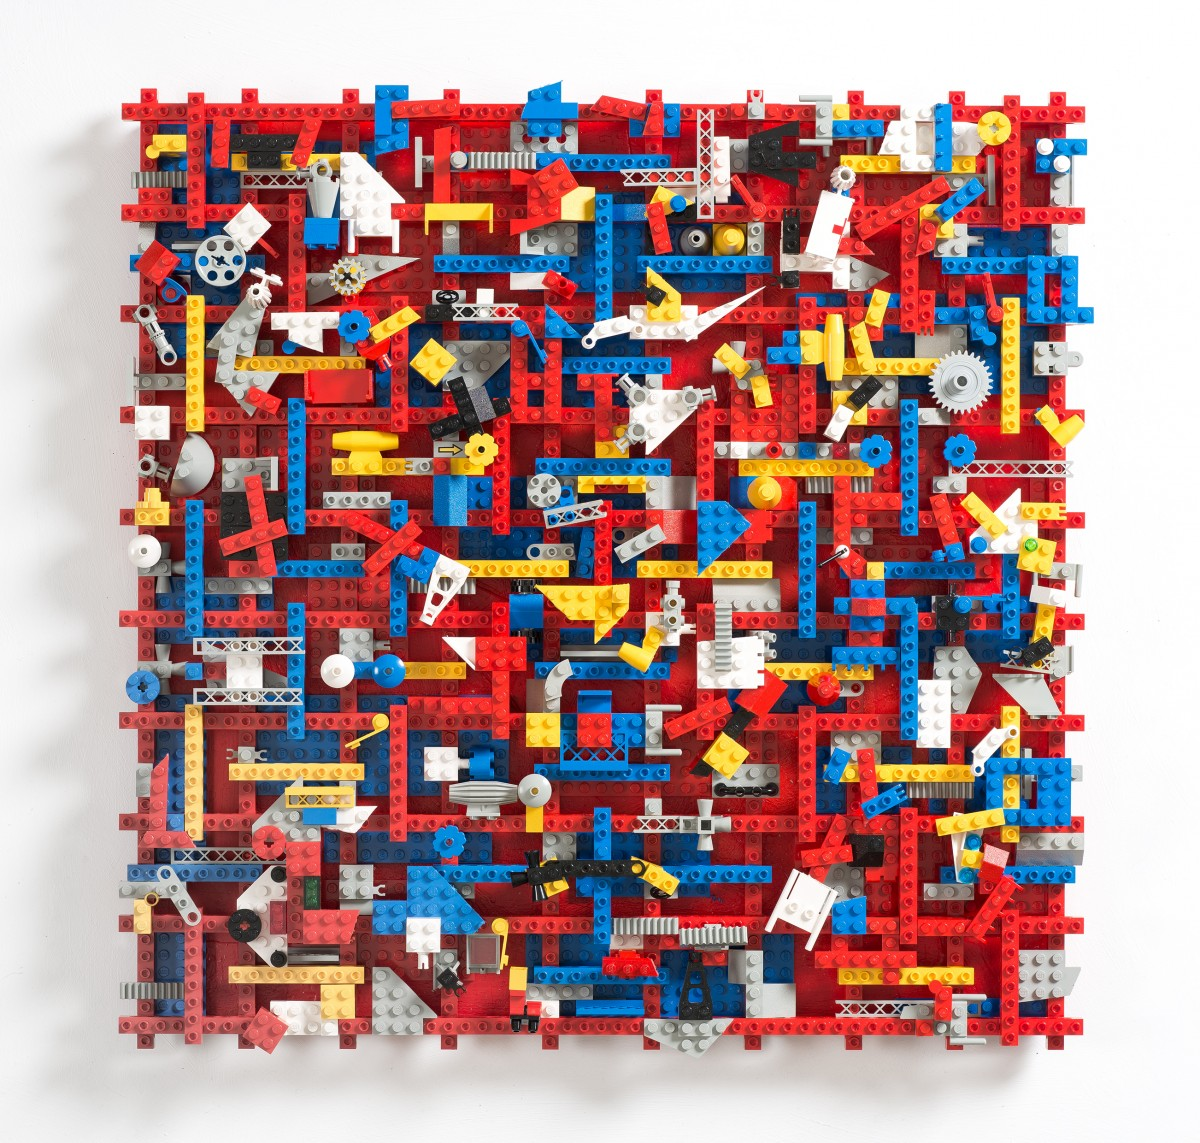 Lindy Hop Abstract LEGO sculpture by Michael Brennand-Wood